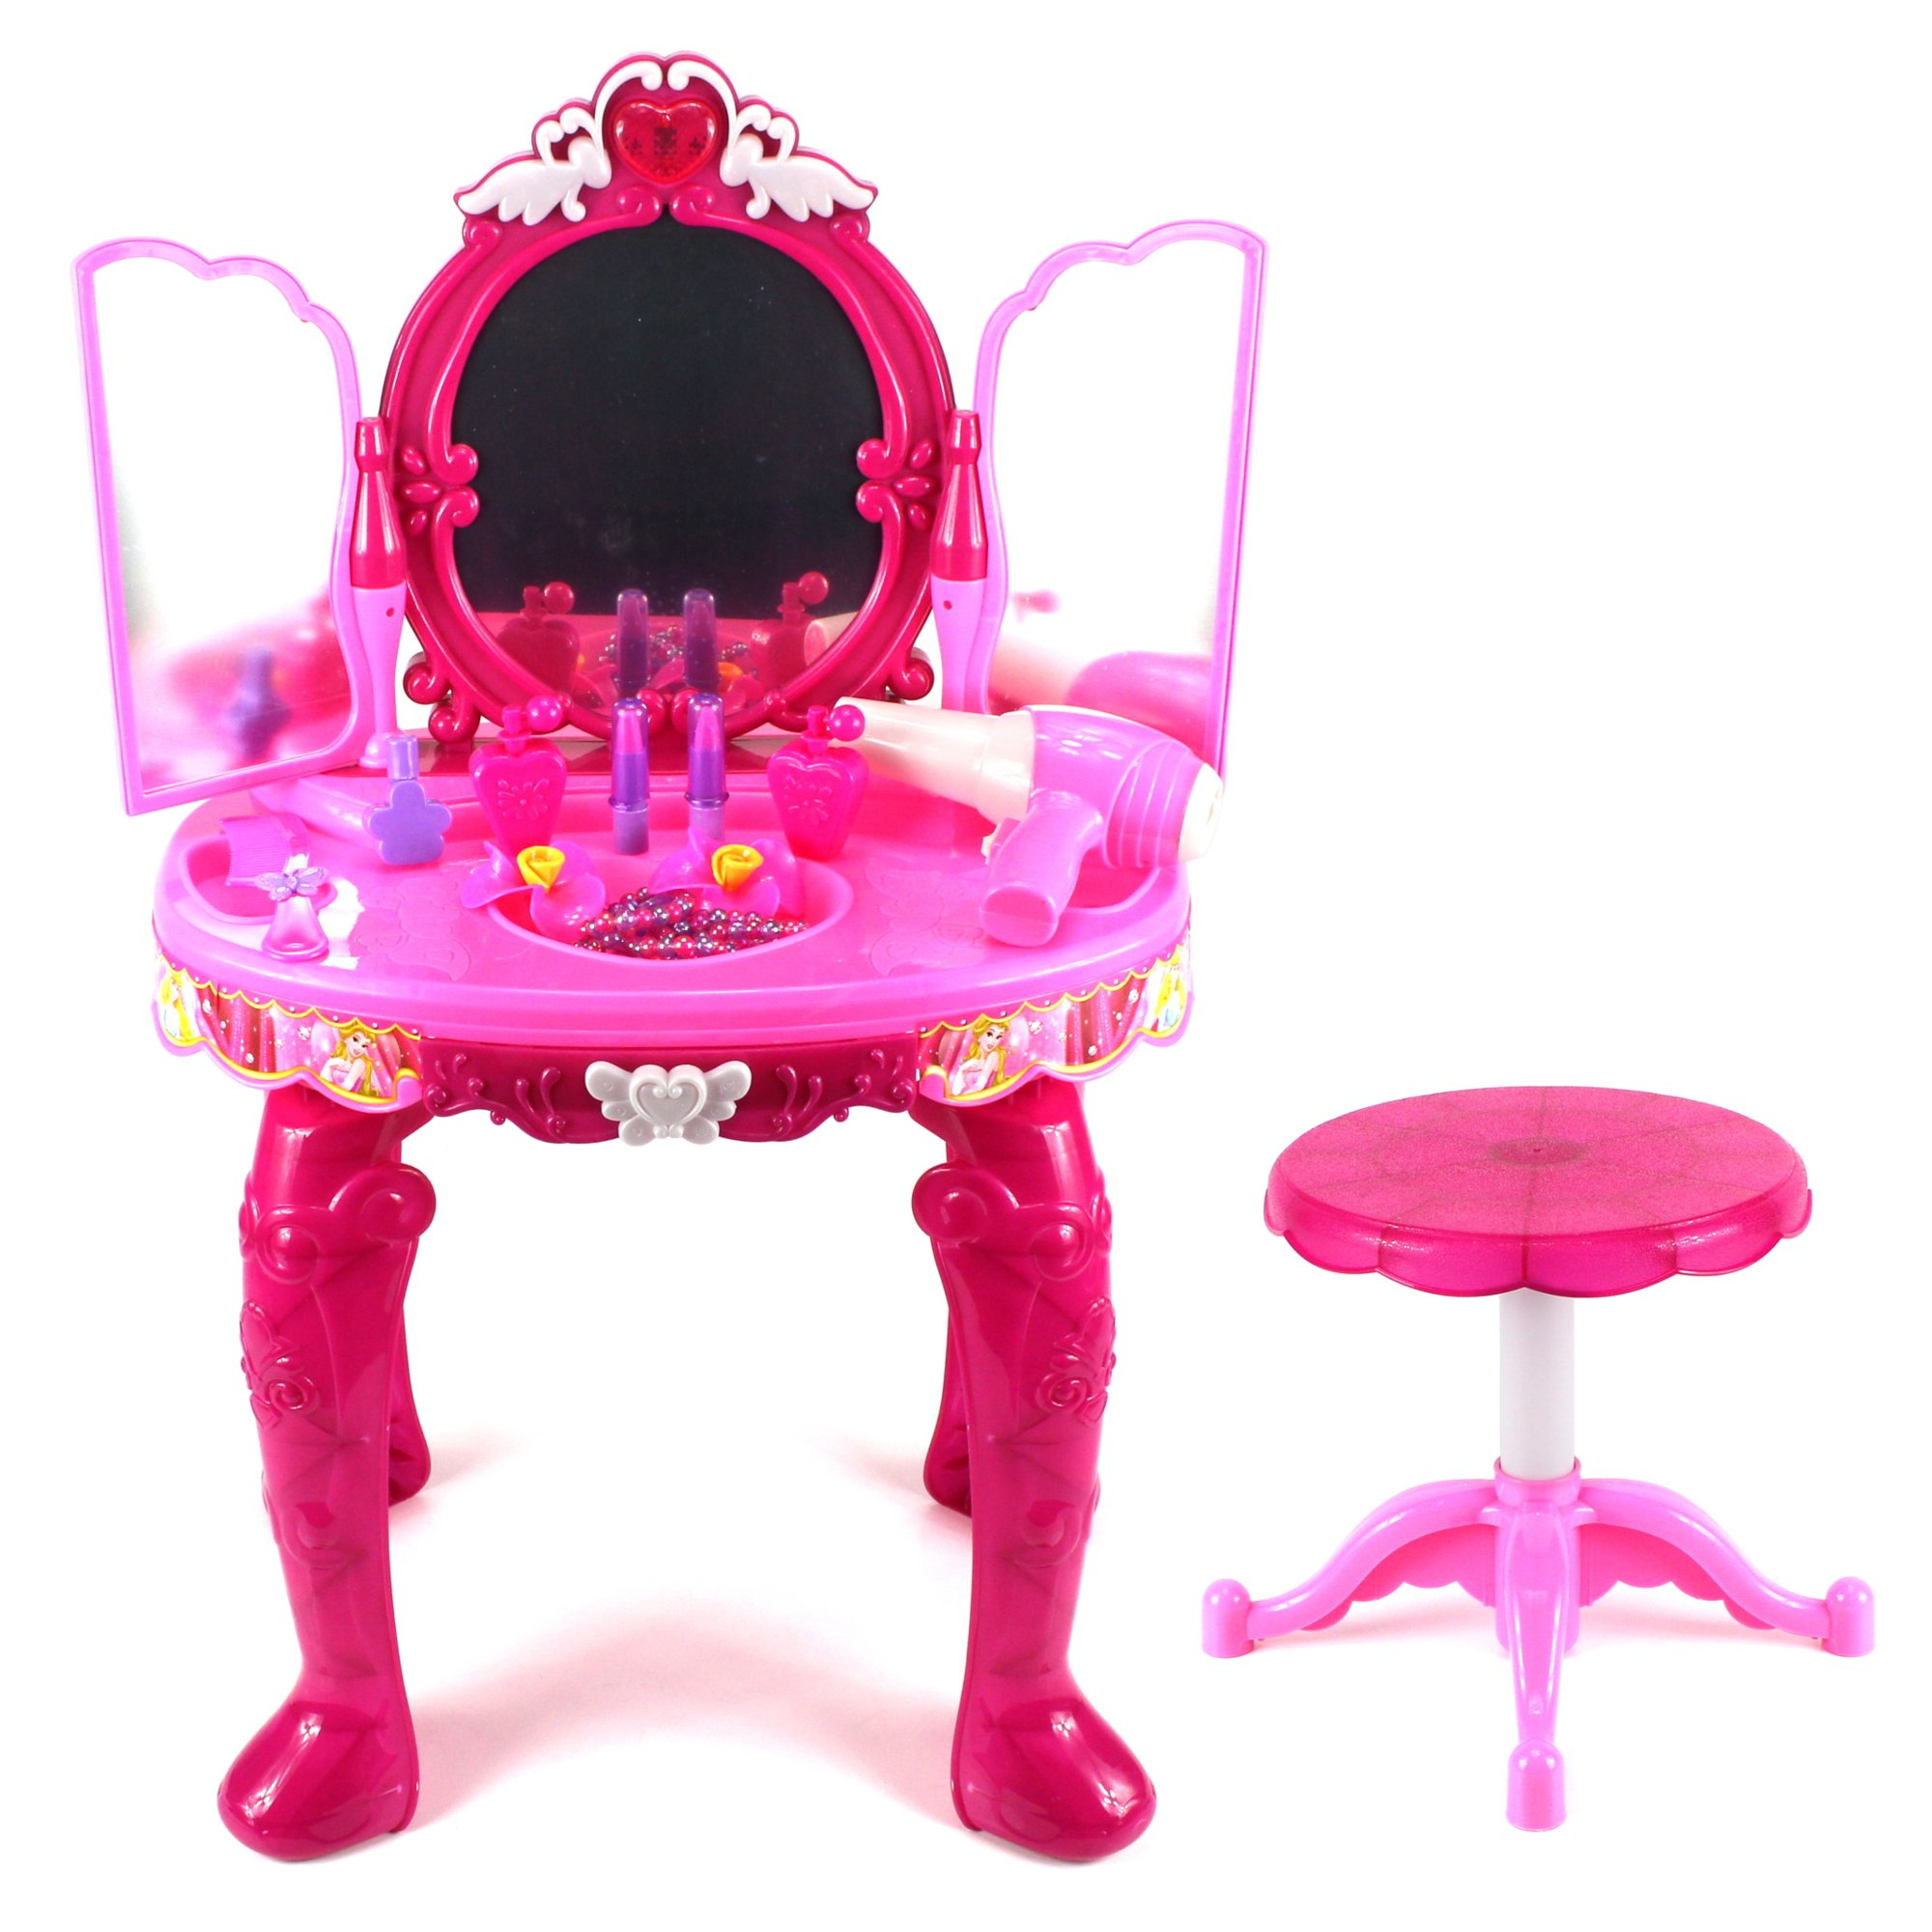 Magical Princess Jewelry Stand Pretend Play Battery Operated Toy Beauty Mirror Vanity Play Set w/ Flashing Lights, Sounds, Hair Dryer, Accessories